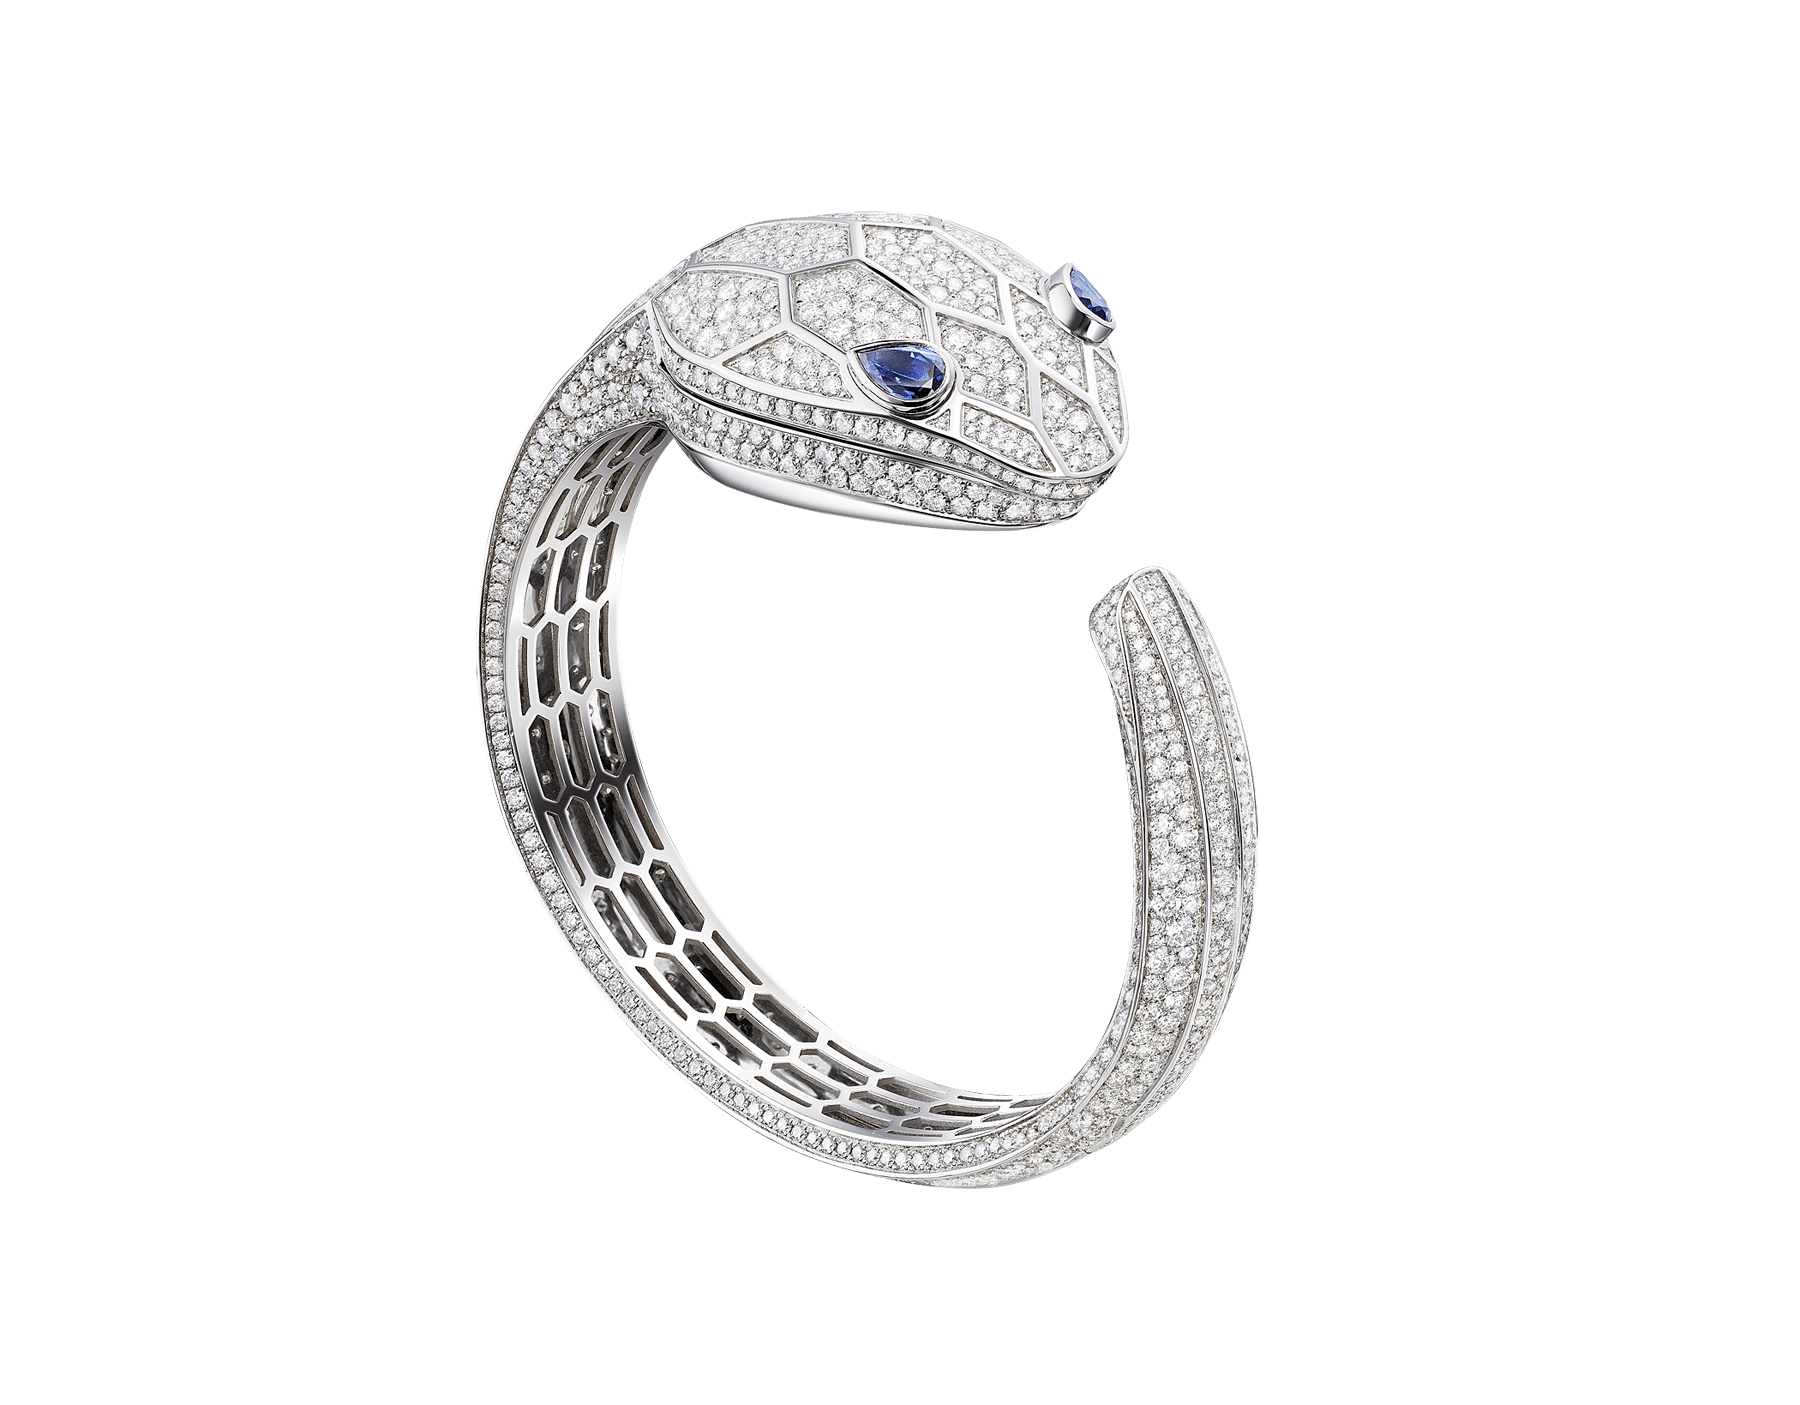 Serpenti Misteriosi Secret Watch in 18 kt white gold case and bangle bracelet, both set with round brilliant-cut diamonds, diamond full pavé dial and pear-shaped sapphire eyes. Small size 102752 image 2